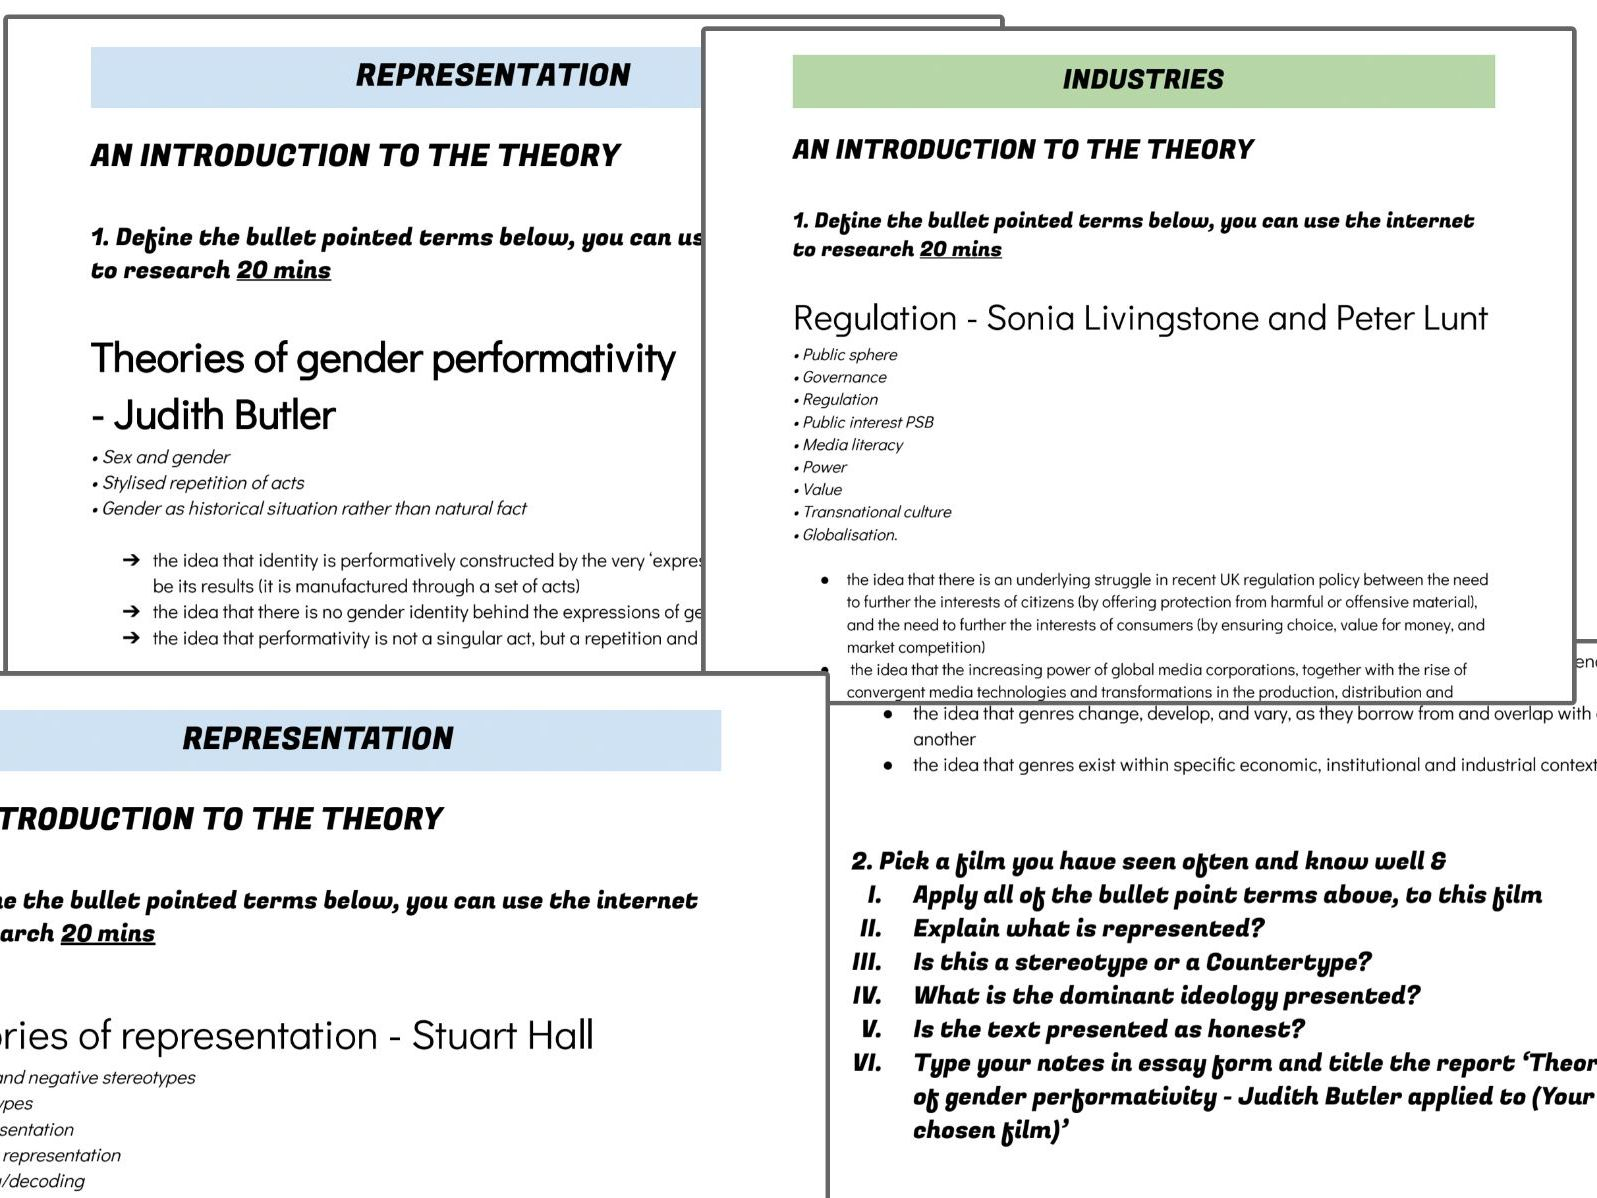 Wjec Media A Level Representation Amp Industry Worksheets